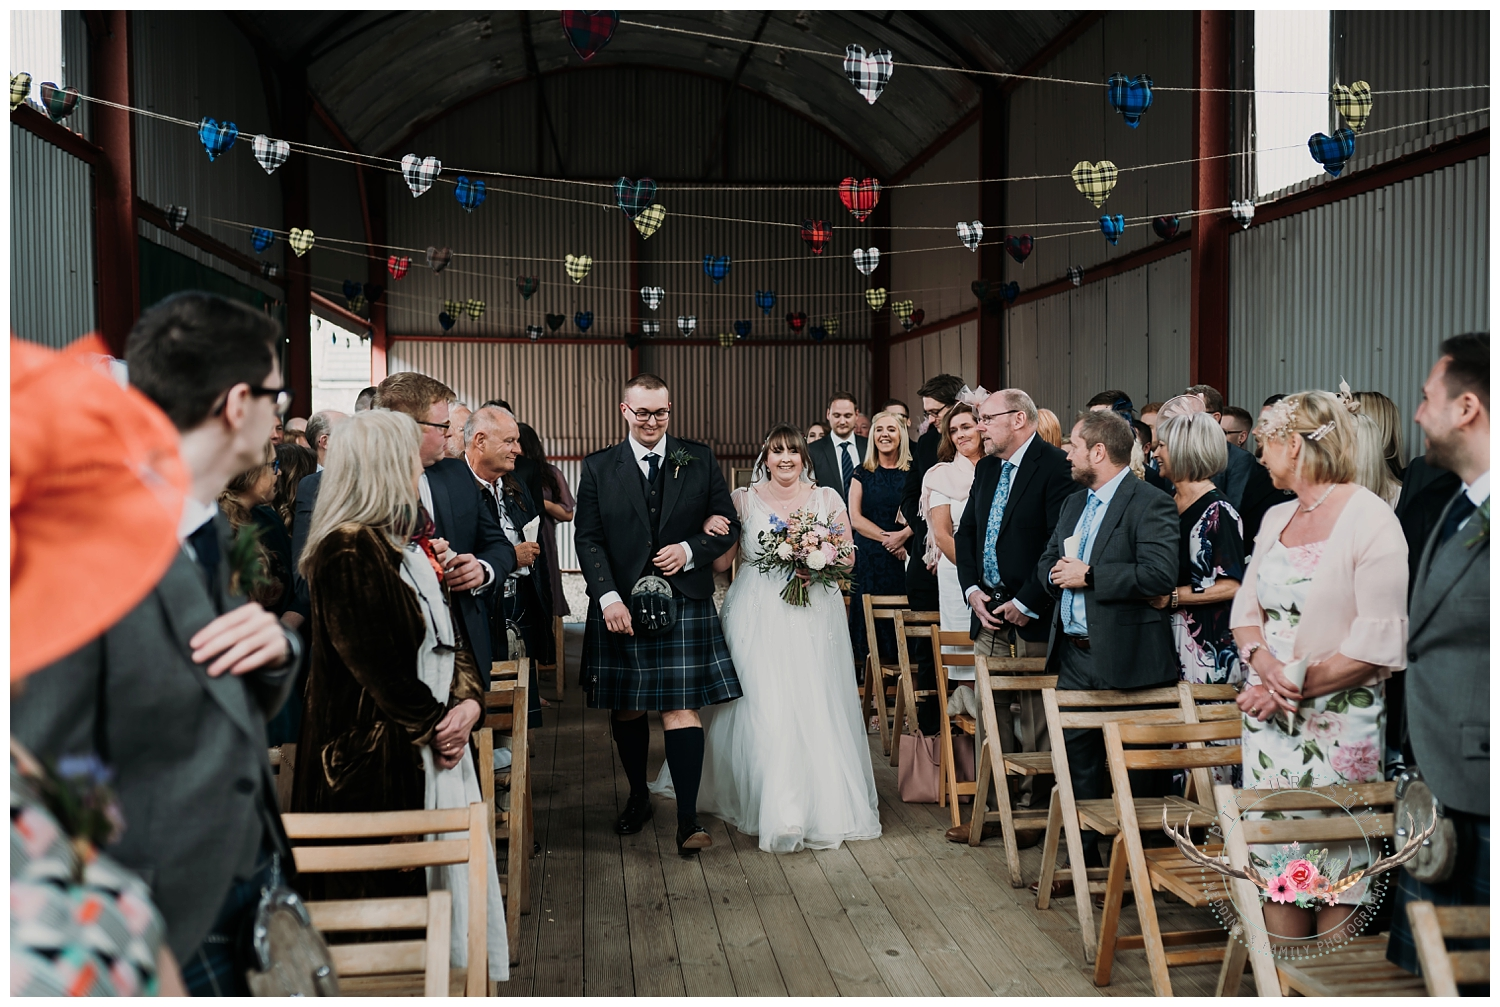 The Barn at Dalduff Farm, Picturesque, WeddingPhotography, Scotland_0017.jpg